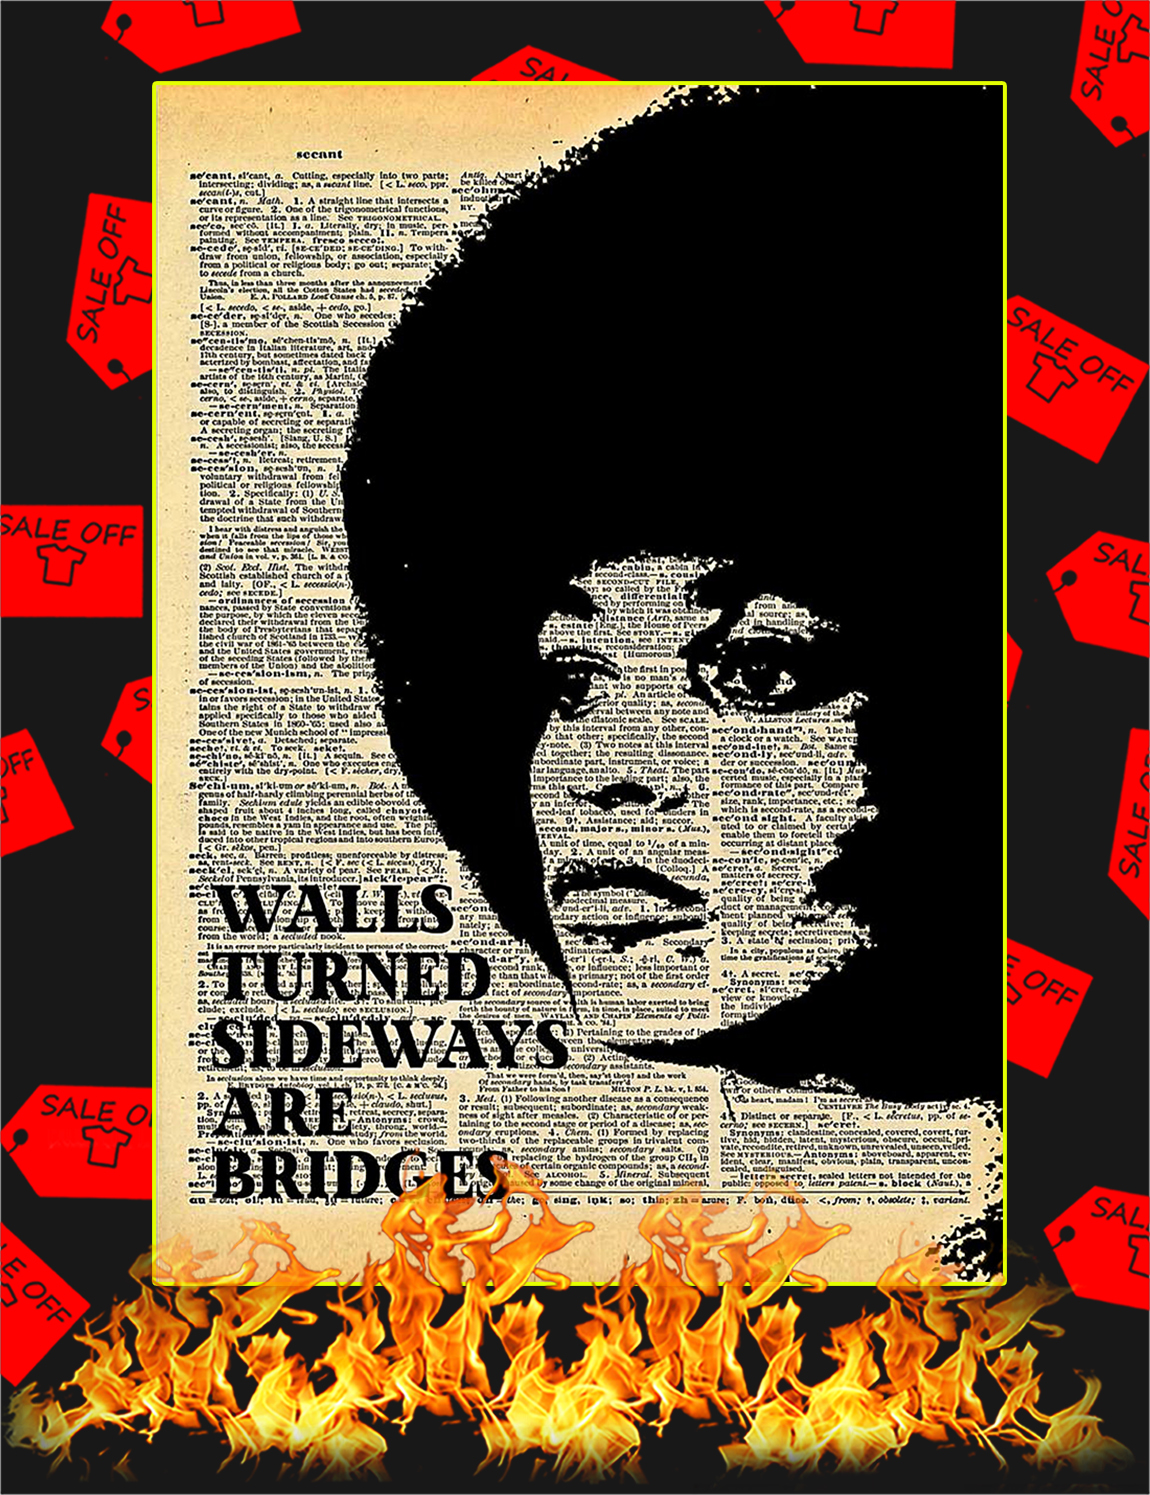 Angela Davis Walls turned sideways are bridges poster - A3